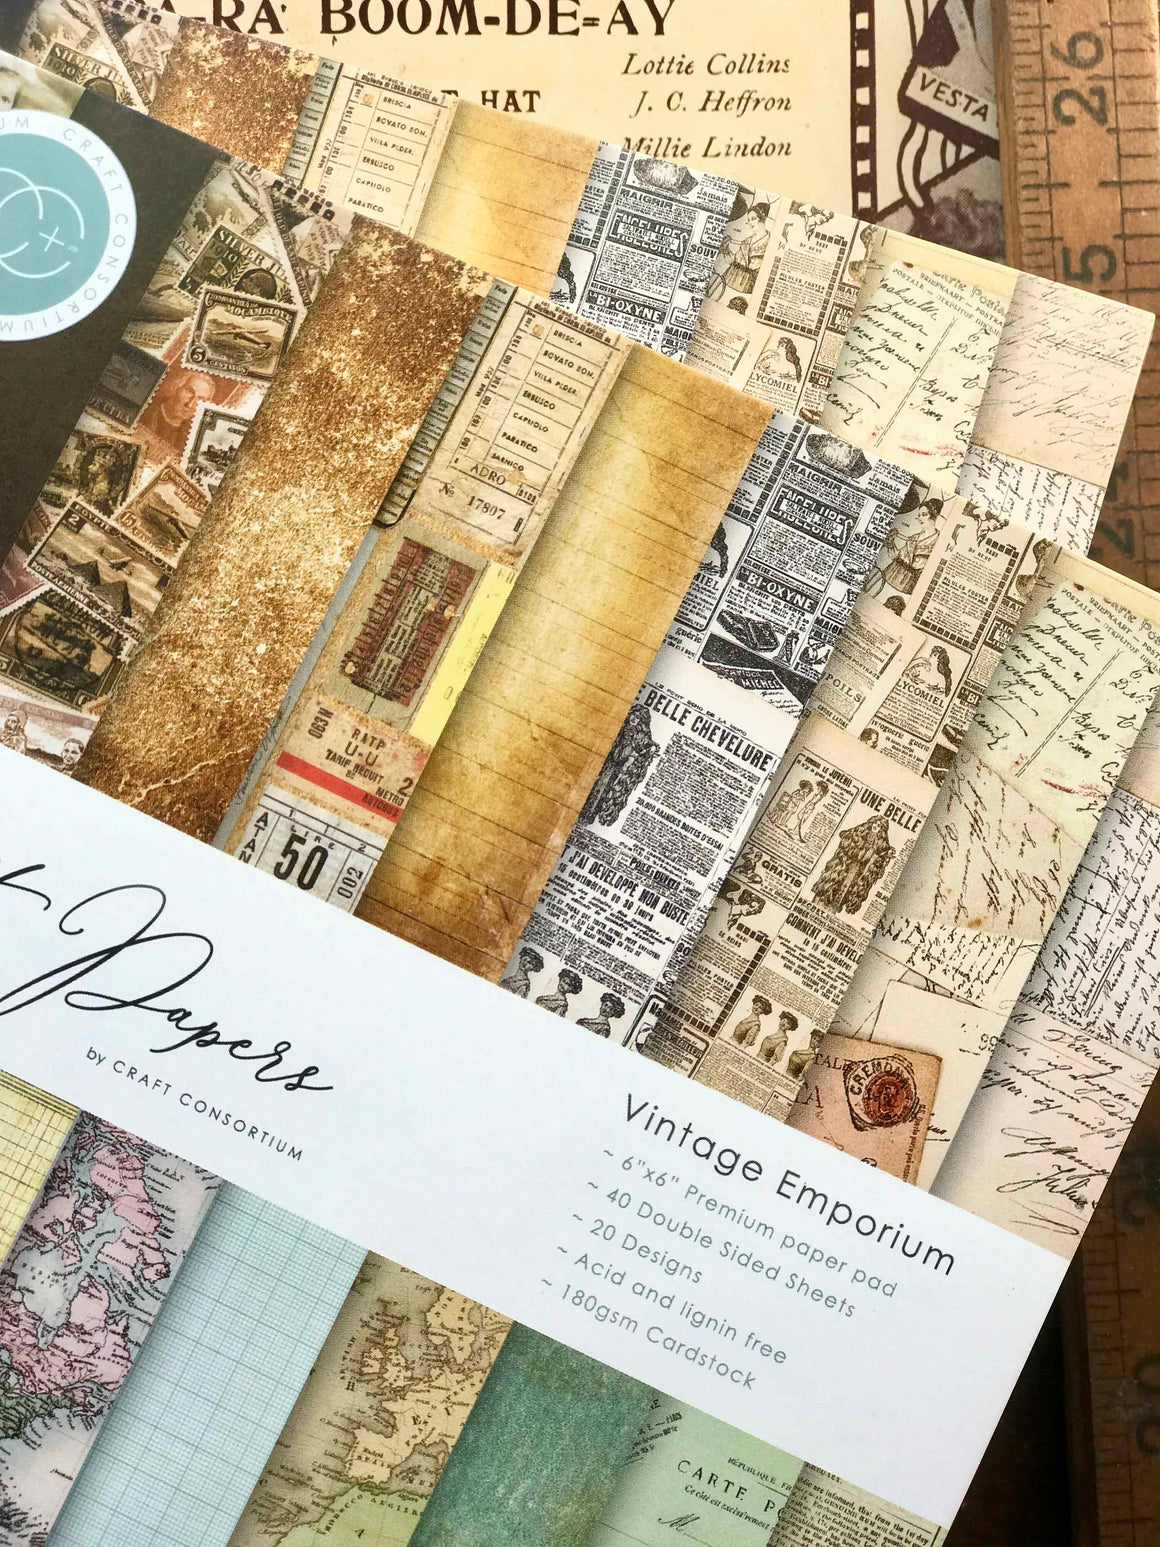 "'Vintage Emporium' 2-sided 6"" x 6"" Paper Pad by Craft Consortium from micmoc.com"